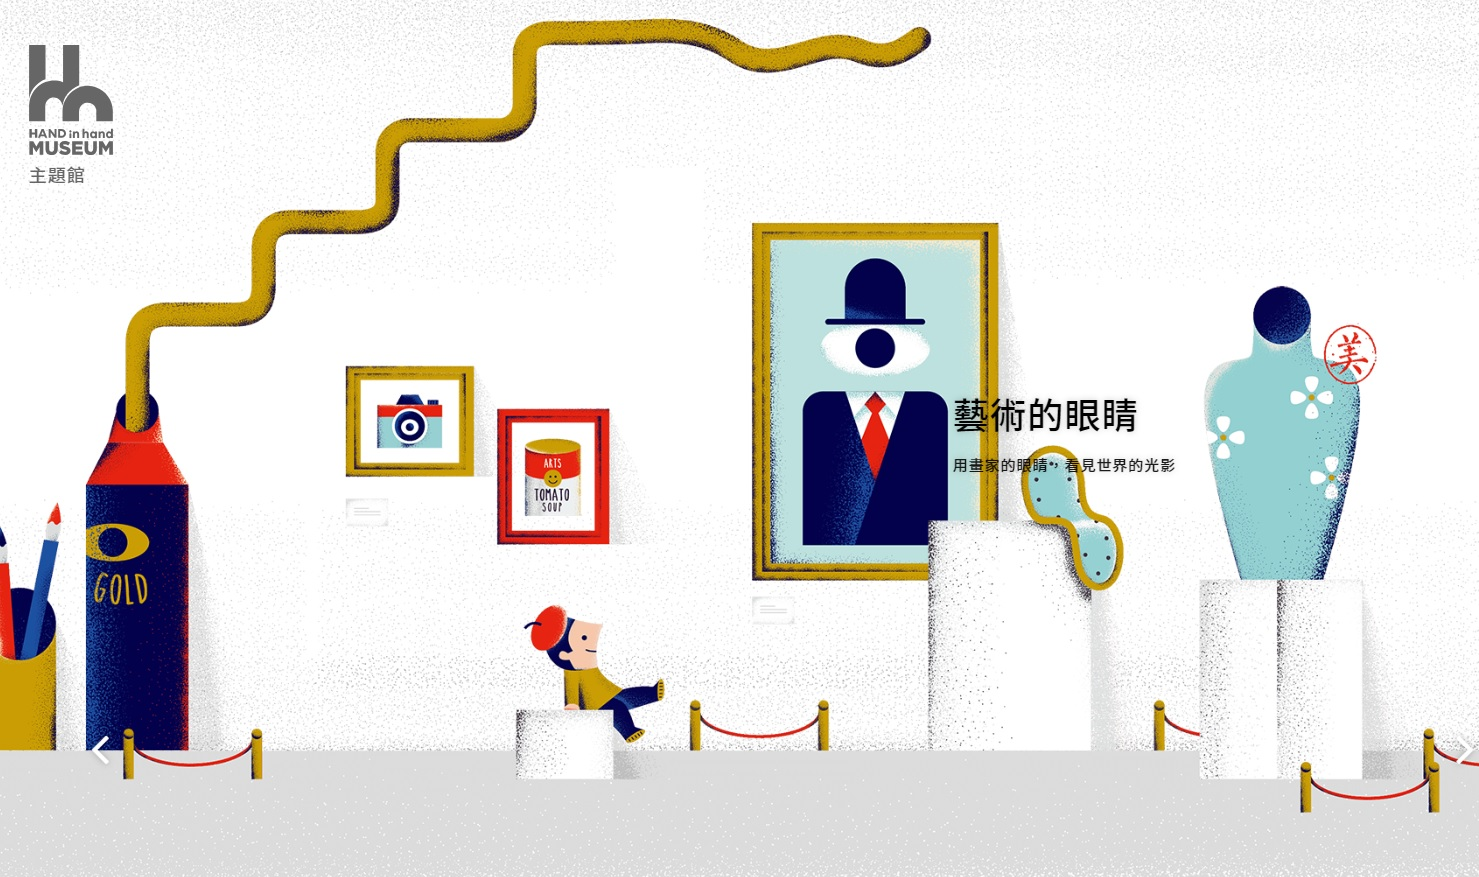 Taiwan museums jointly launch 'virtual museum' for children